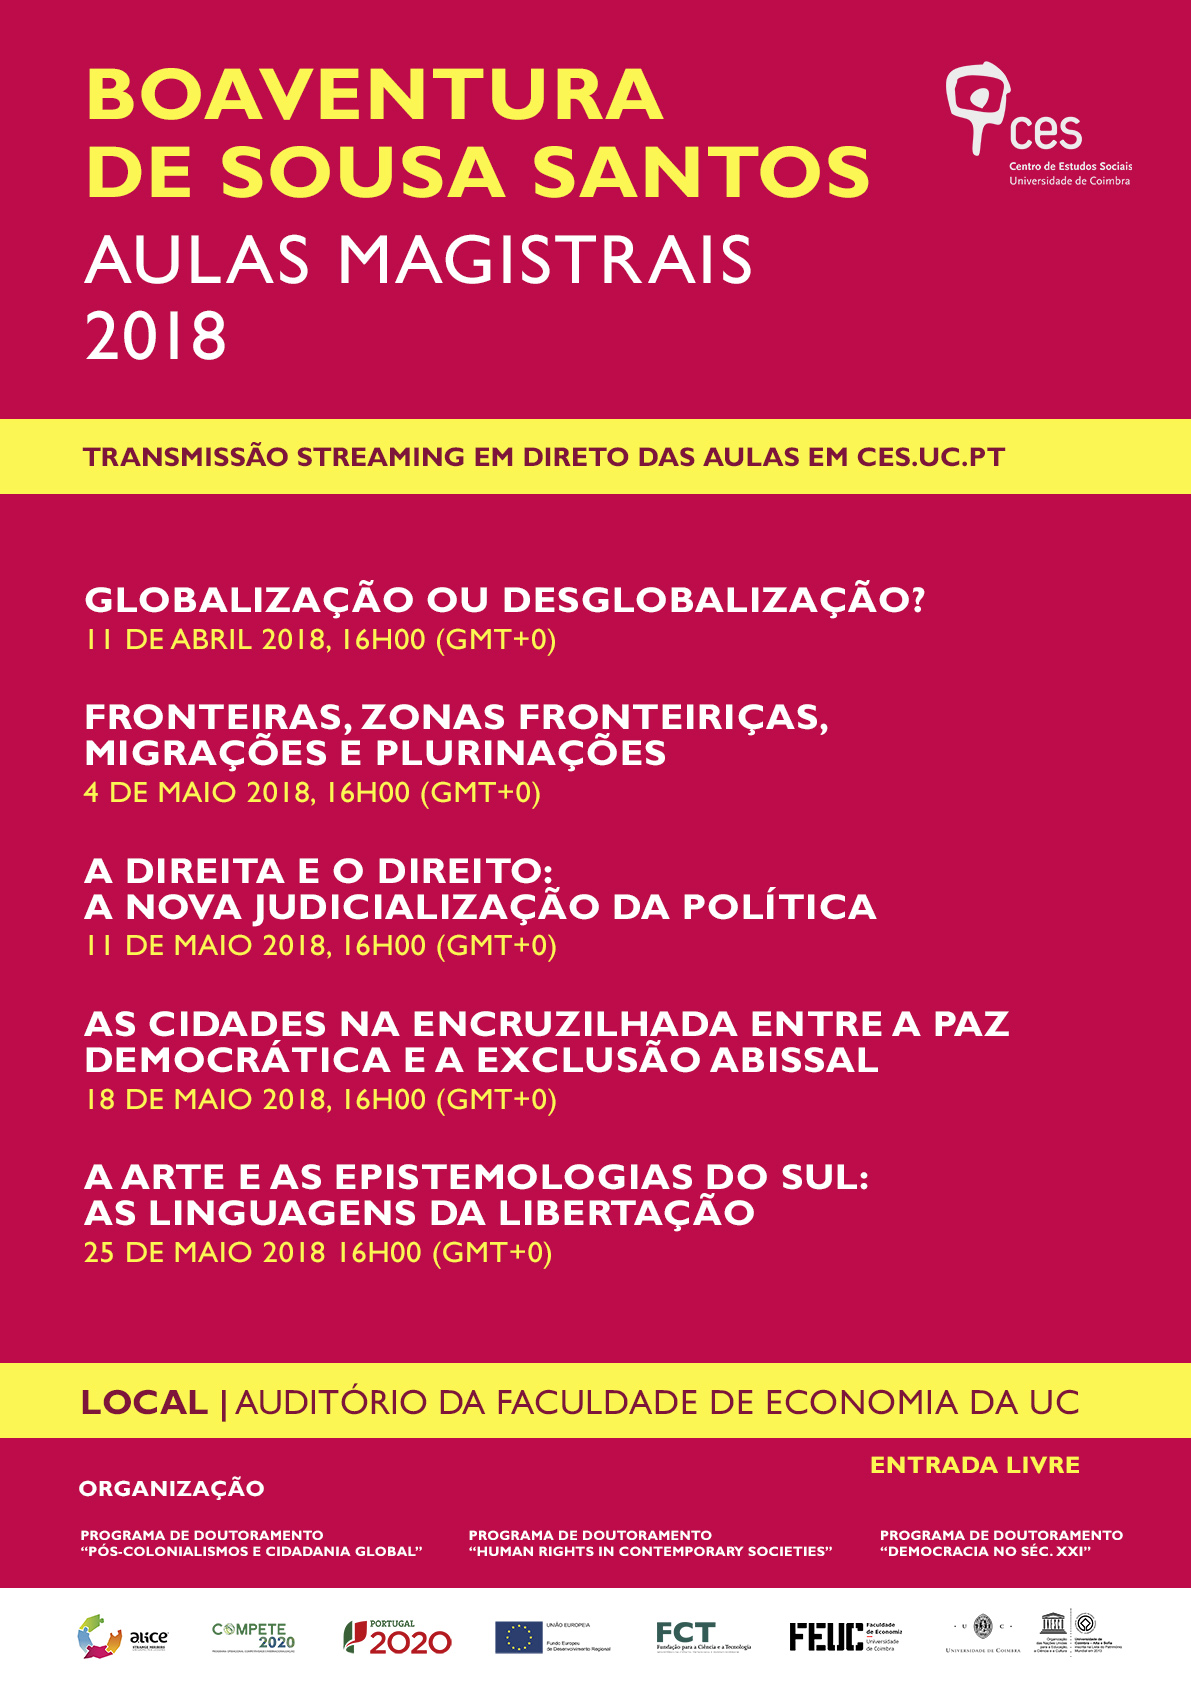 """Cities at the crossroads between democratic peace and abyssal exclusion<span id=""""edit_18828""""><script>$(function() { $('#edit_18828').load( """"/myces/user/editobj.php?tipo=evento&id=18828"""" ); });</script></span>"""